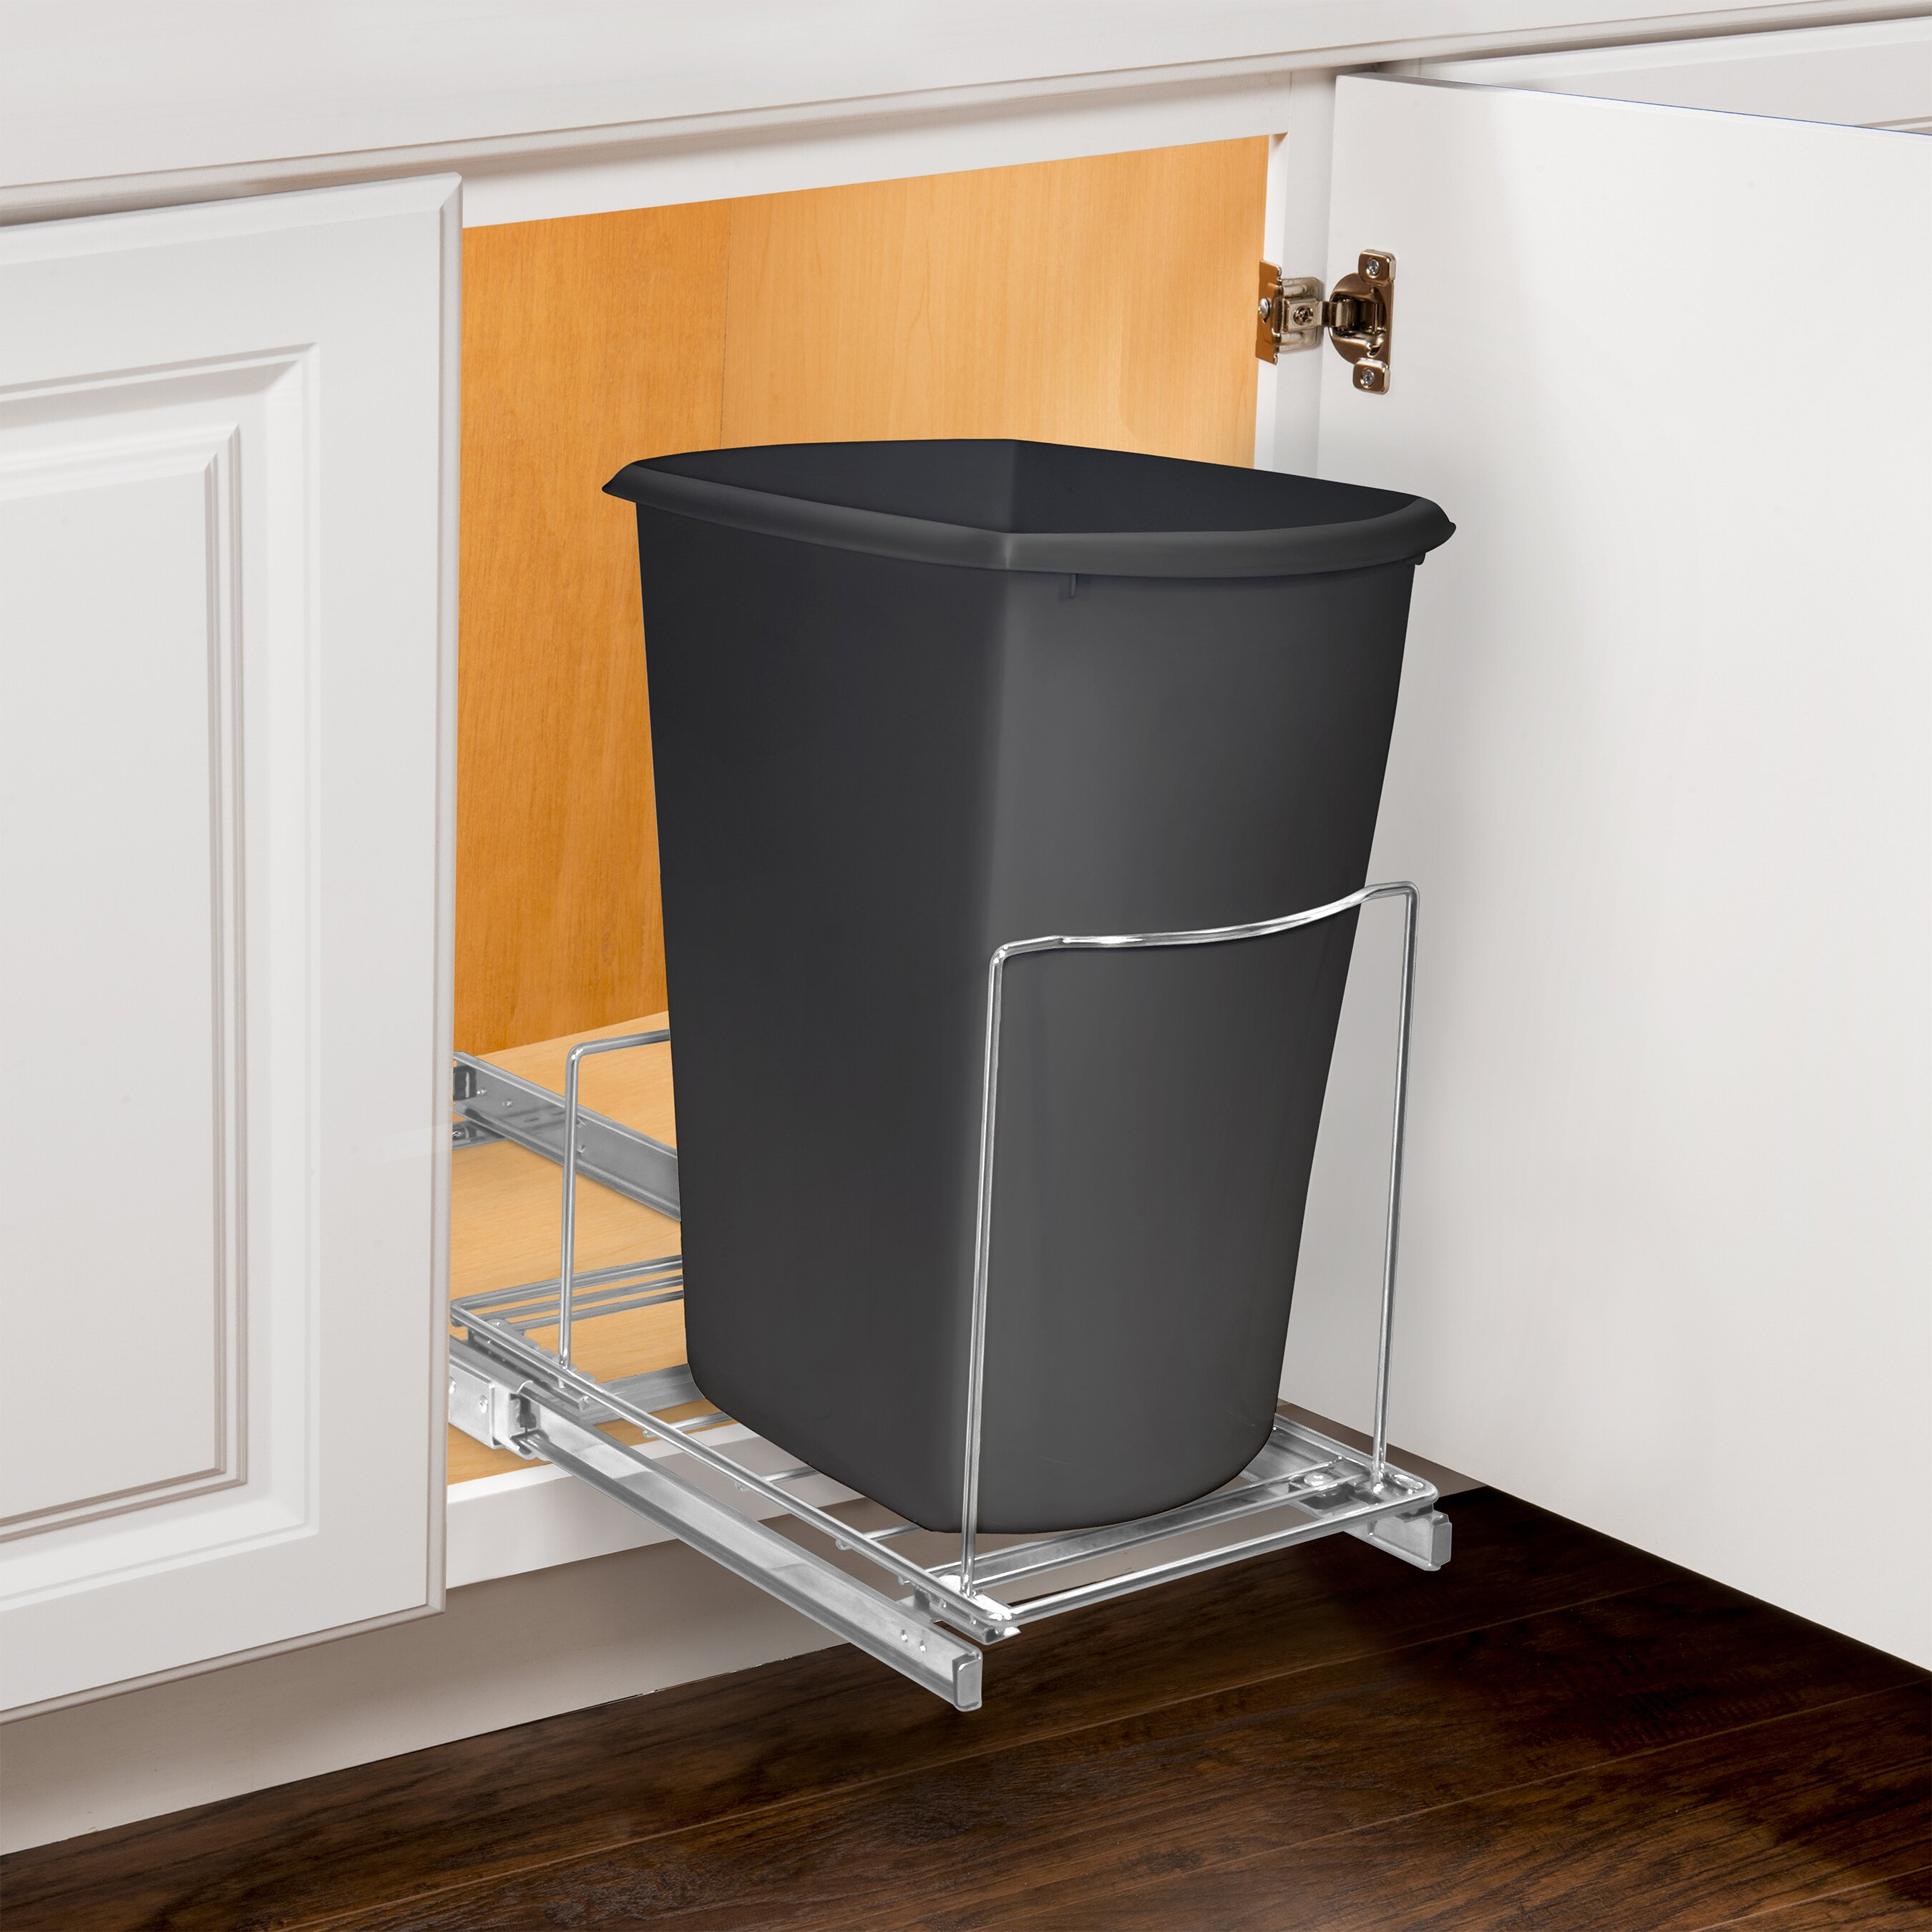 Under Cabinet Drawers: Lynk Roll Out Bin Holder